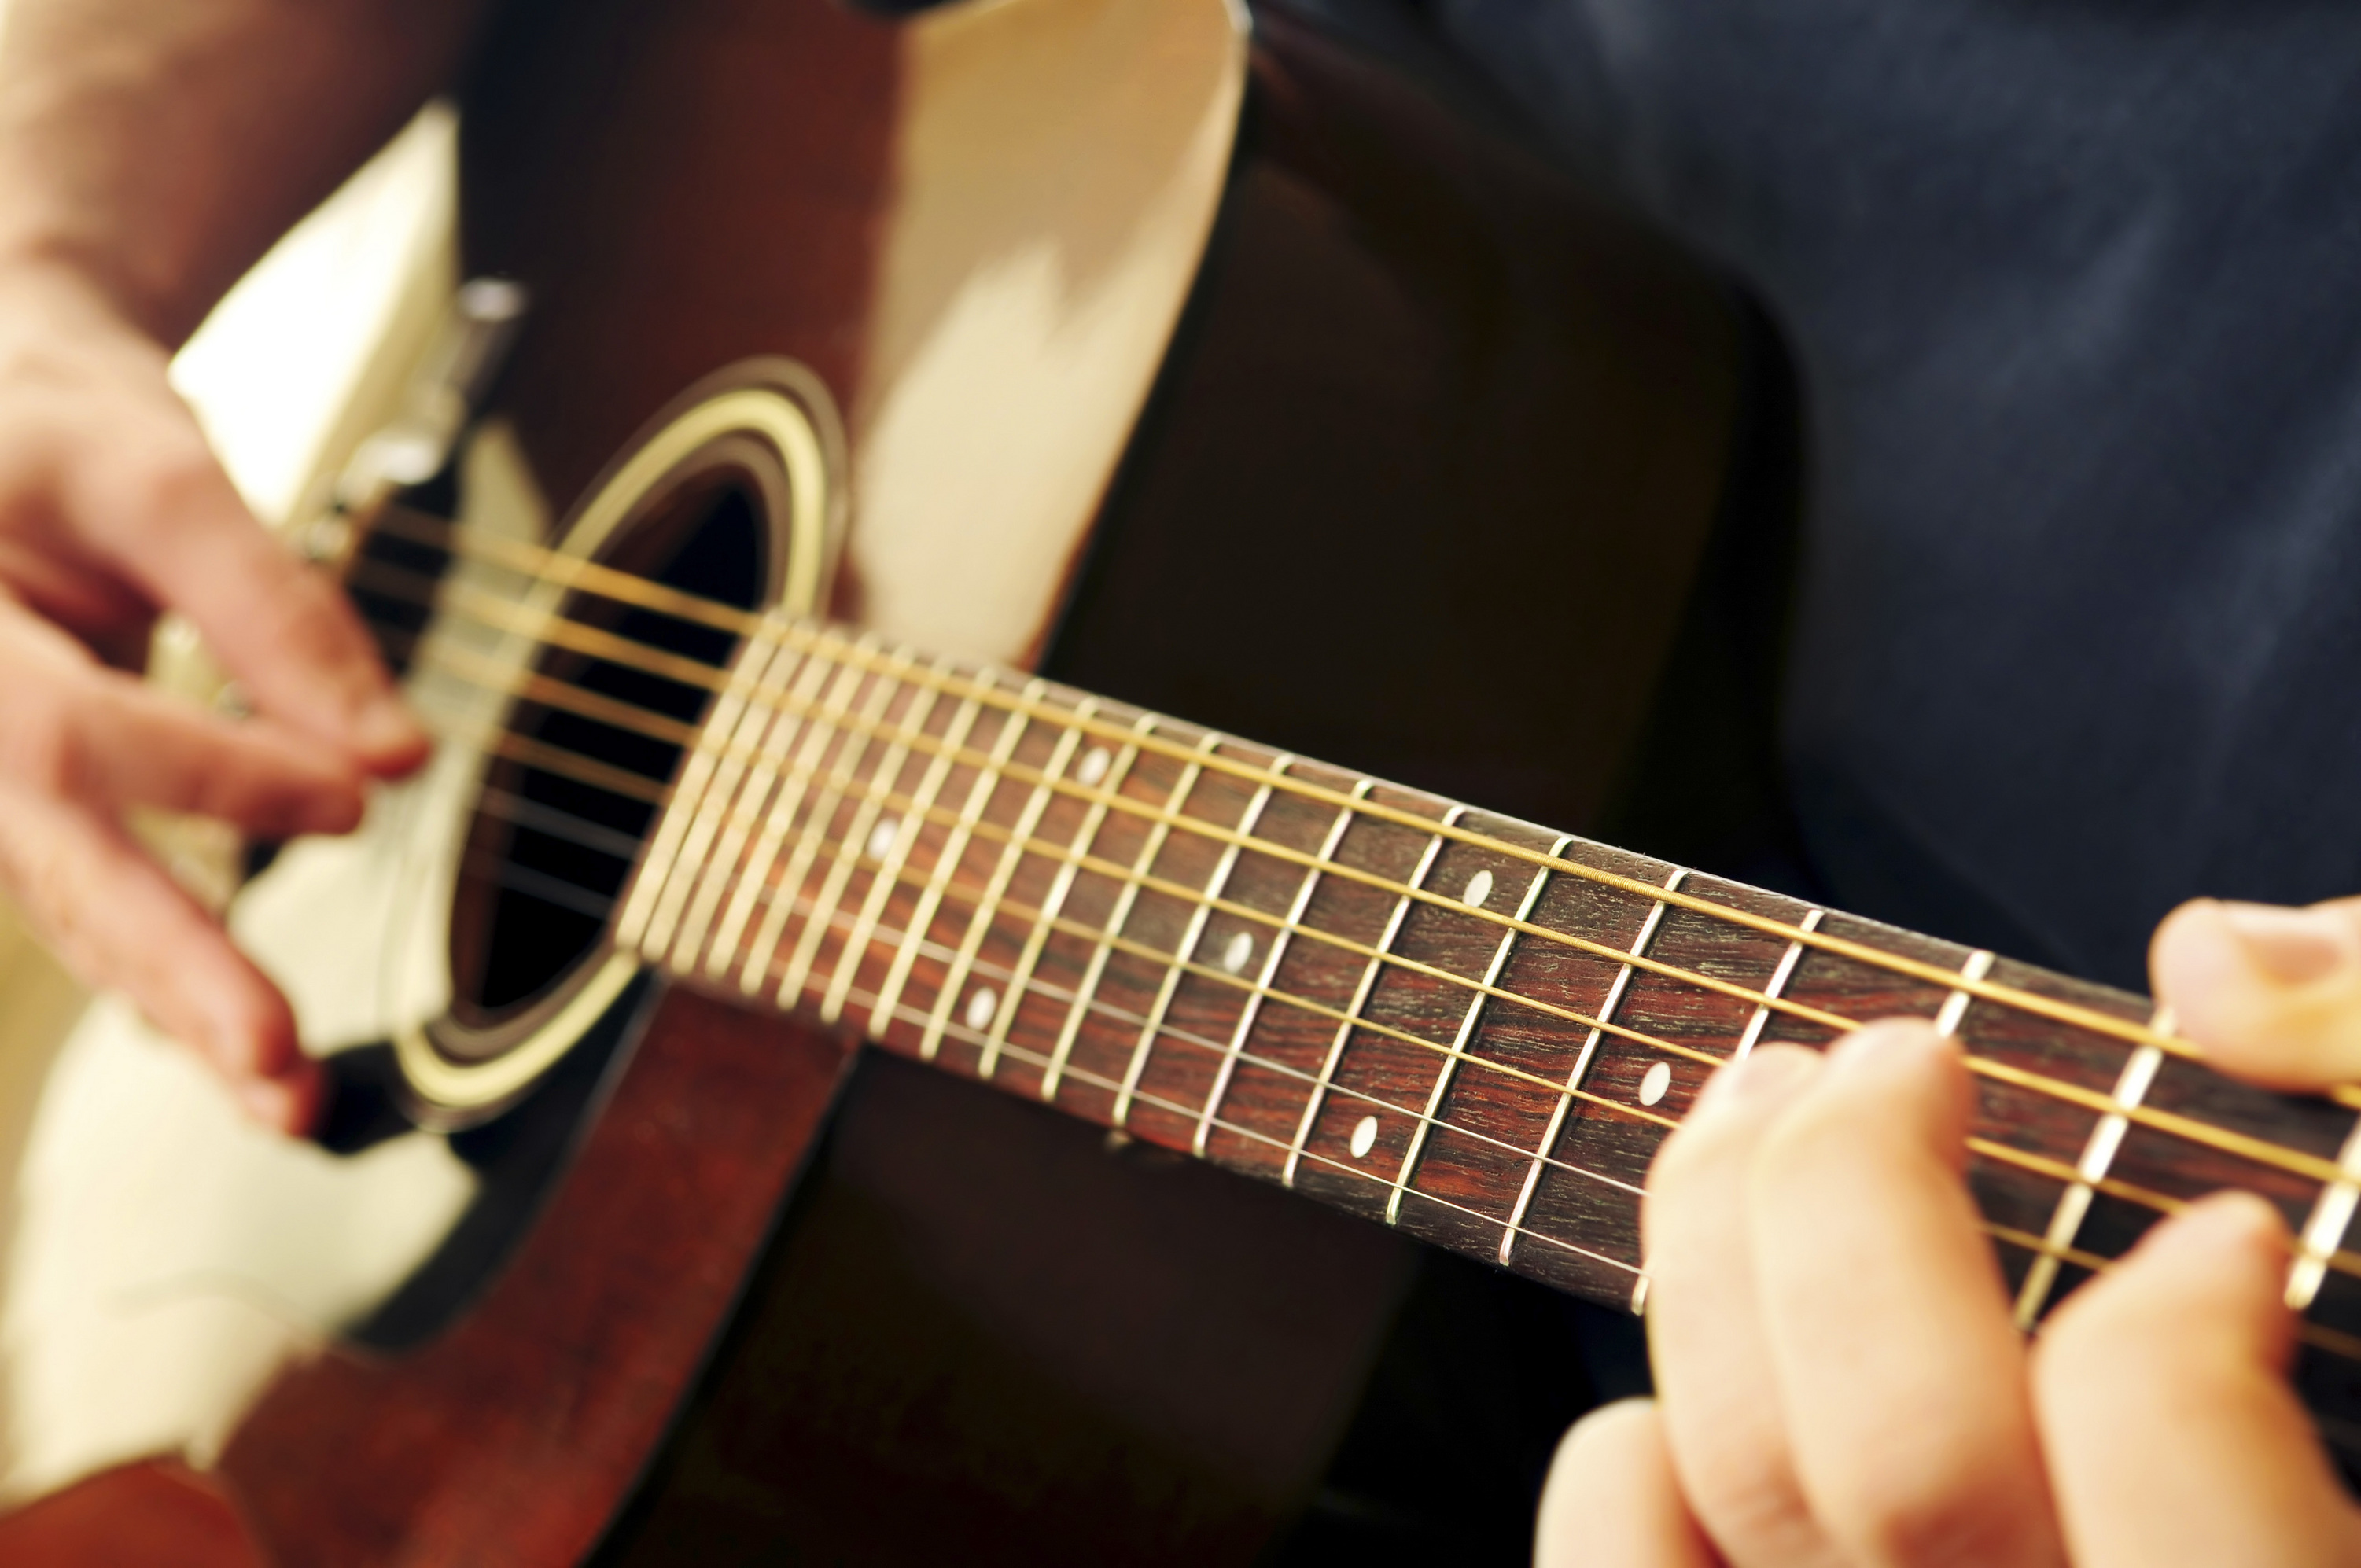 prepare-to-learn-to-play-guitar-3